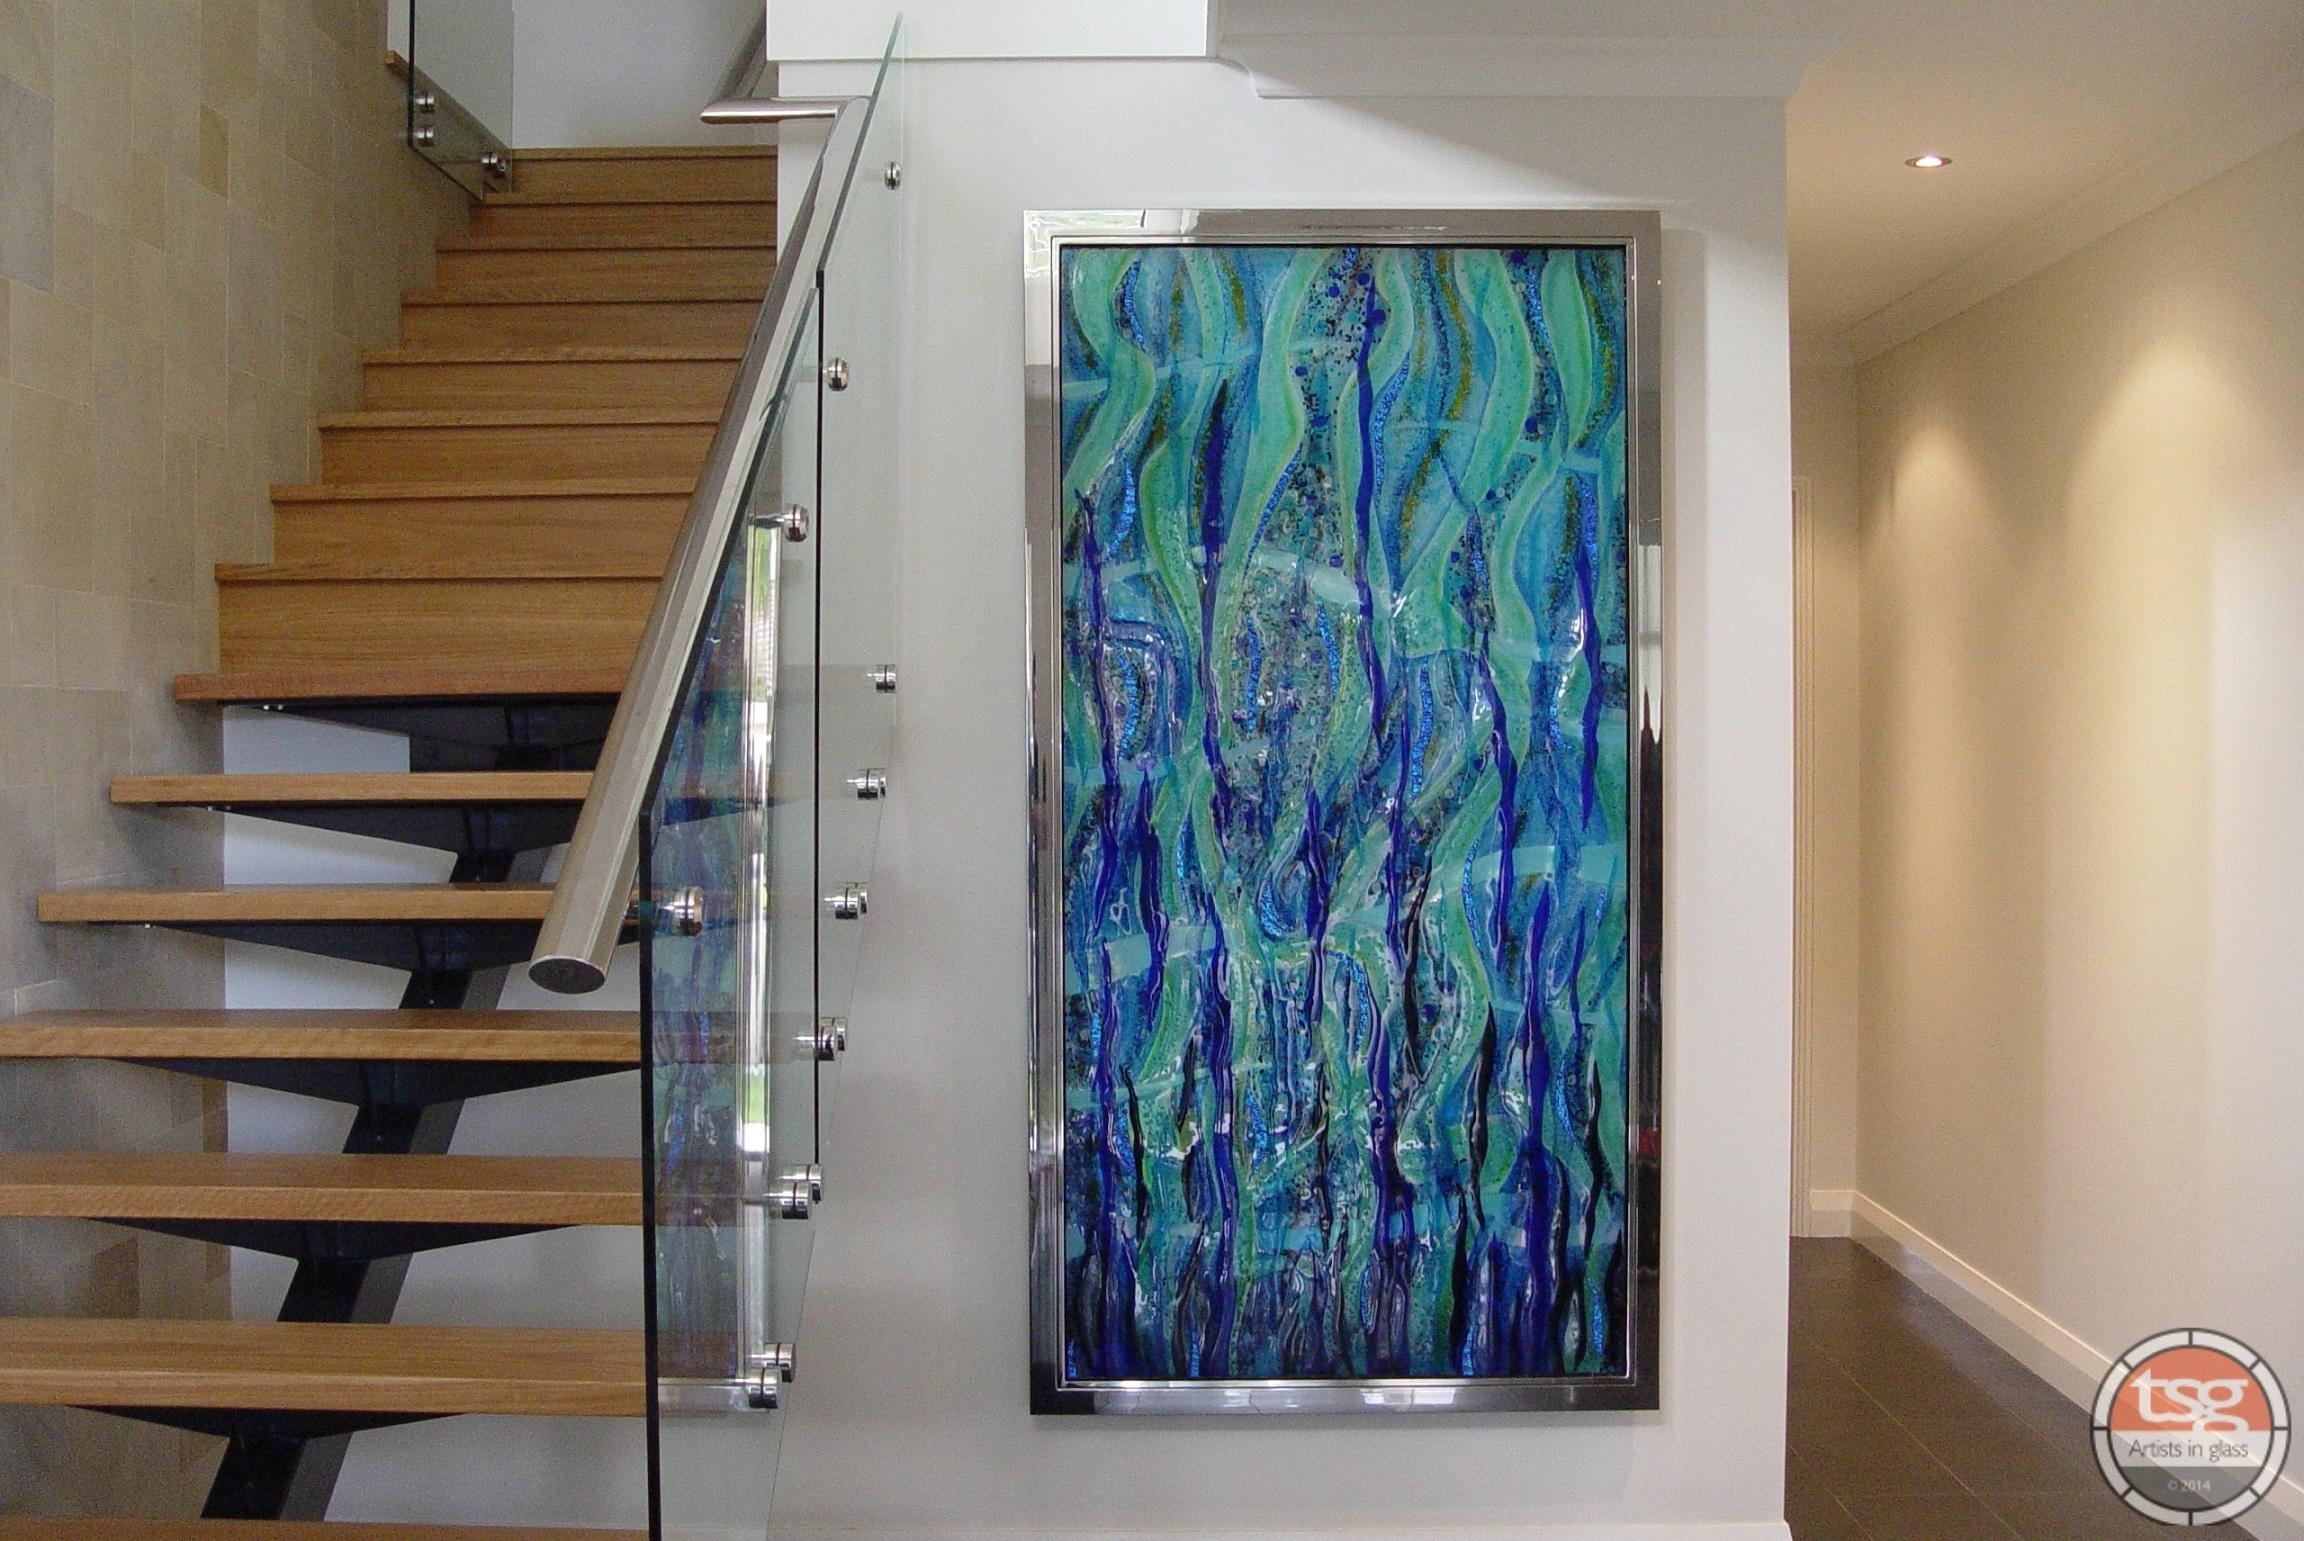 Contemporary Art Glass | Tsg With Fused Glass Wall Art Panels (View 13 of 20)